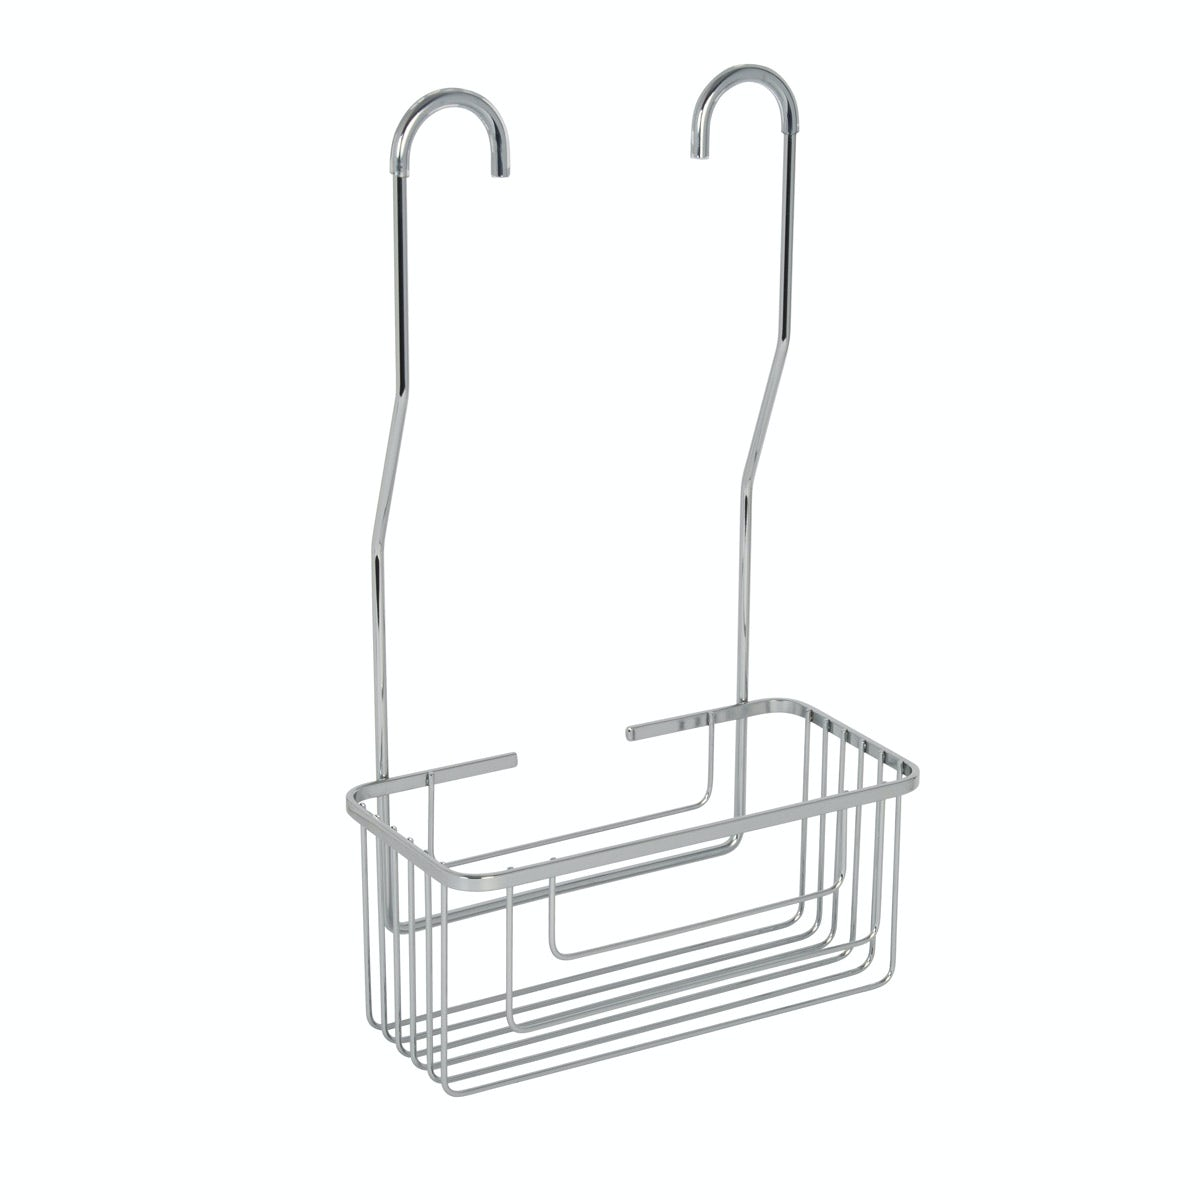 Croydex Rust Free Shower Mixer Caddy Victoriaplum Com